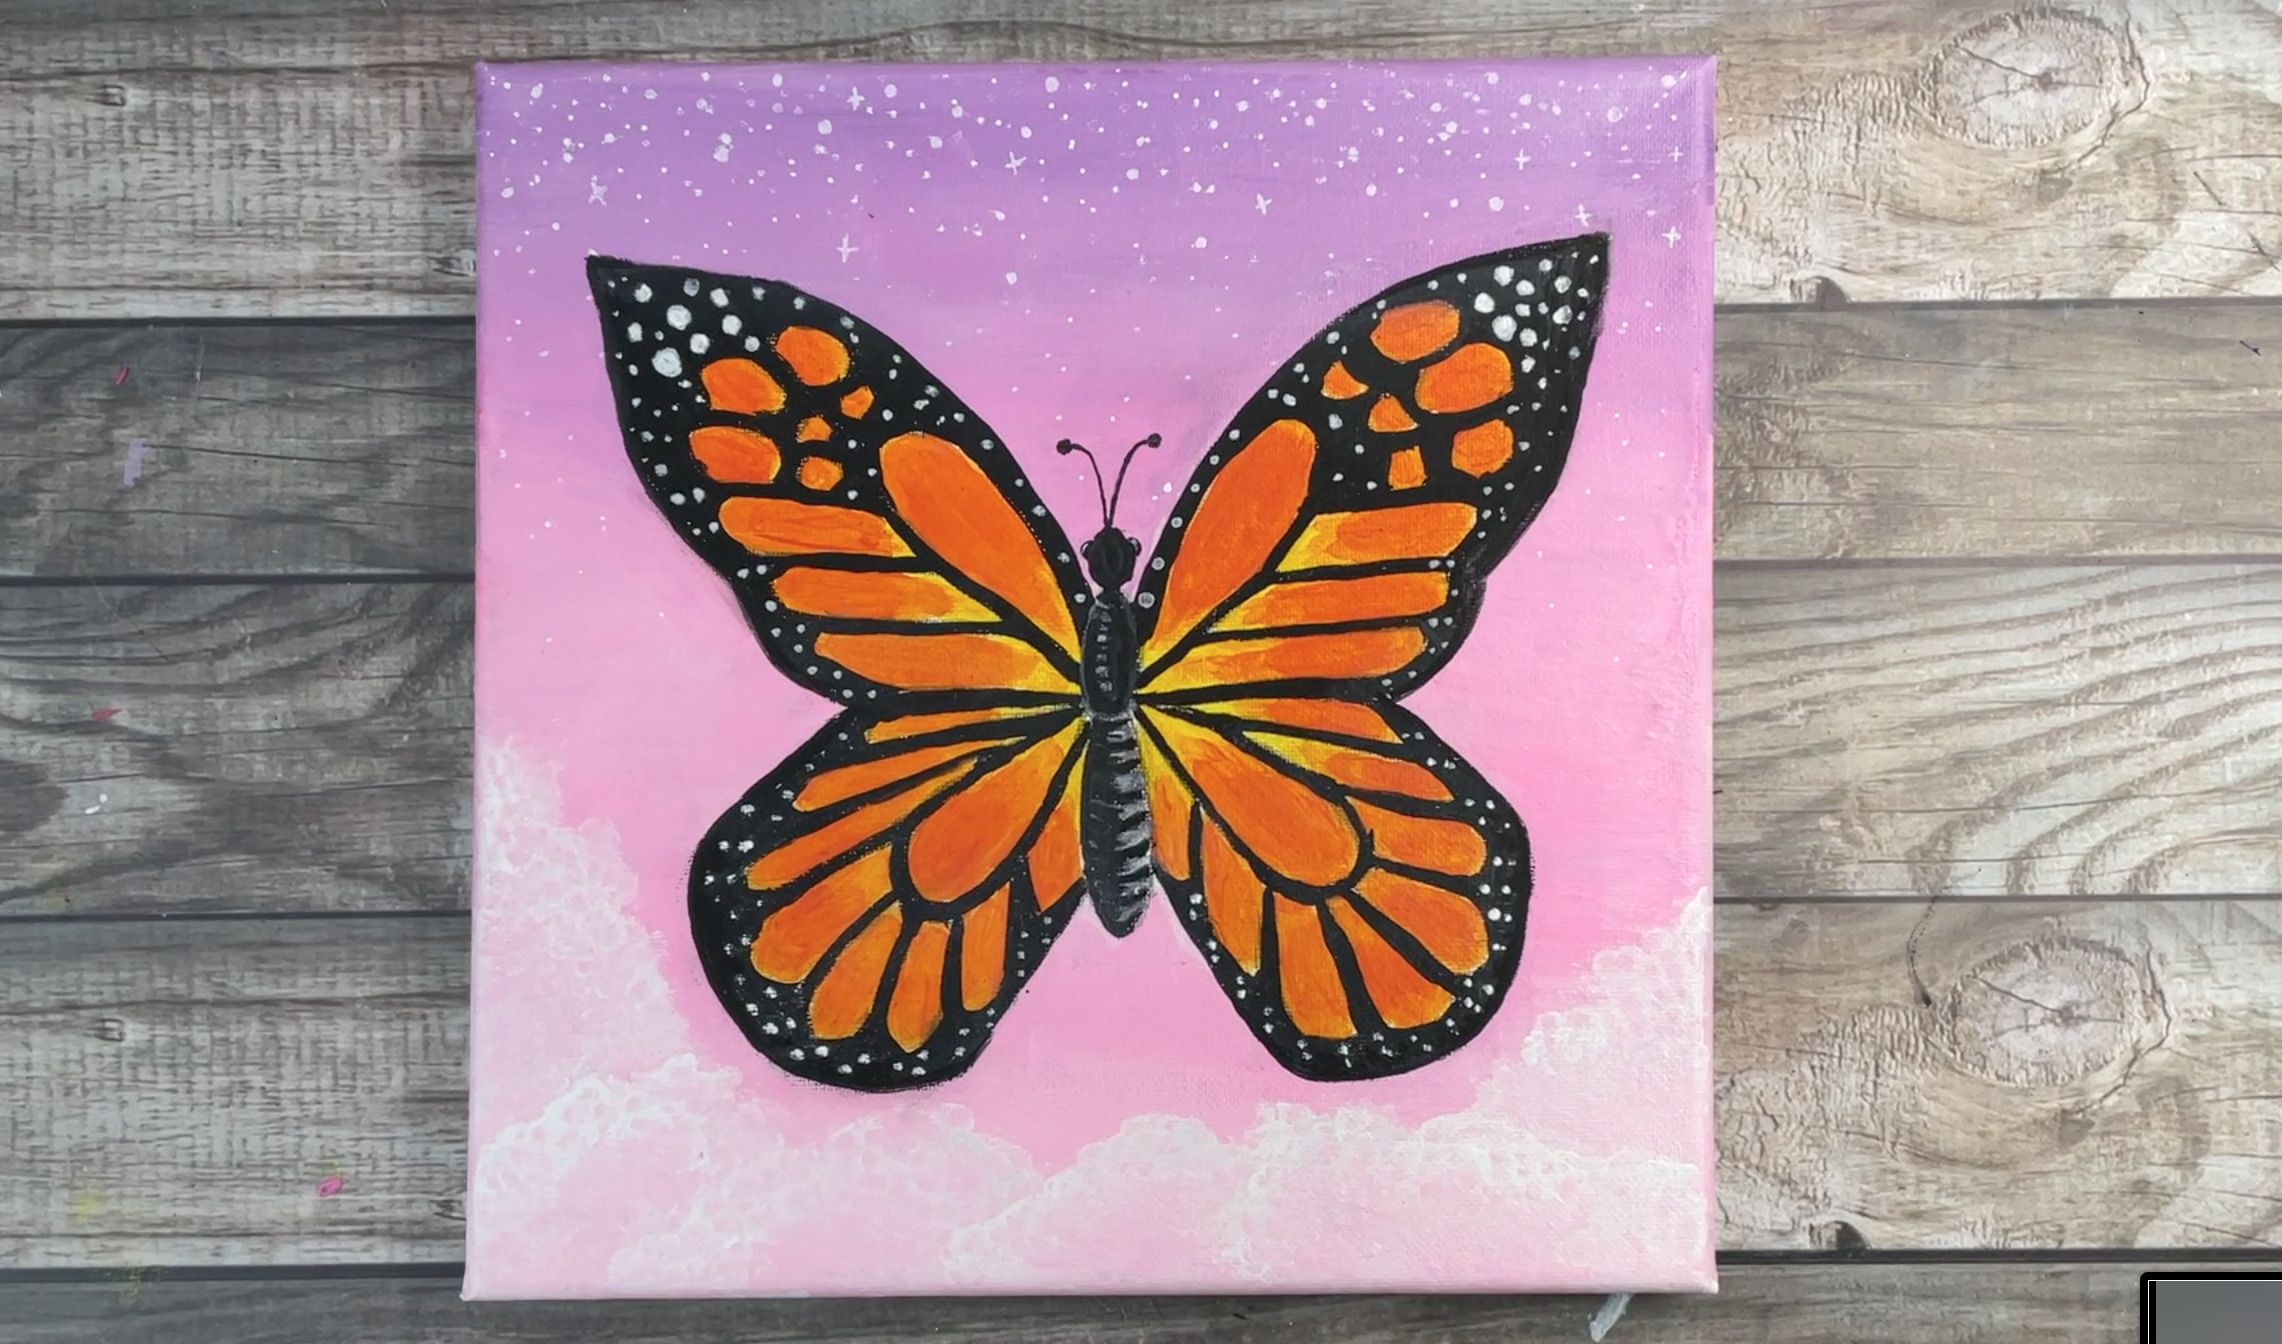 How to paint a butterfly